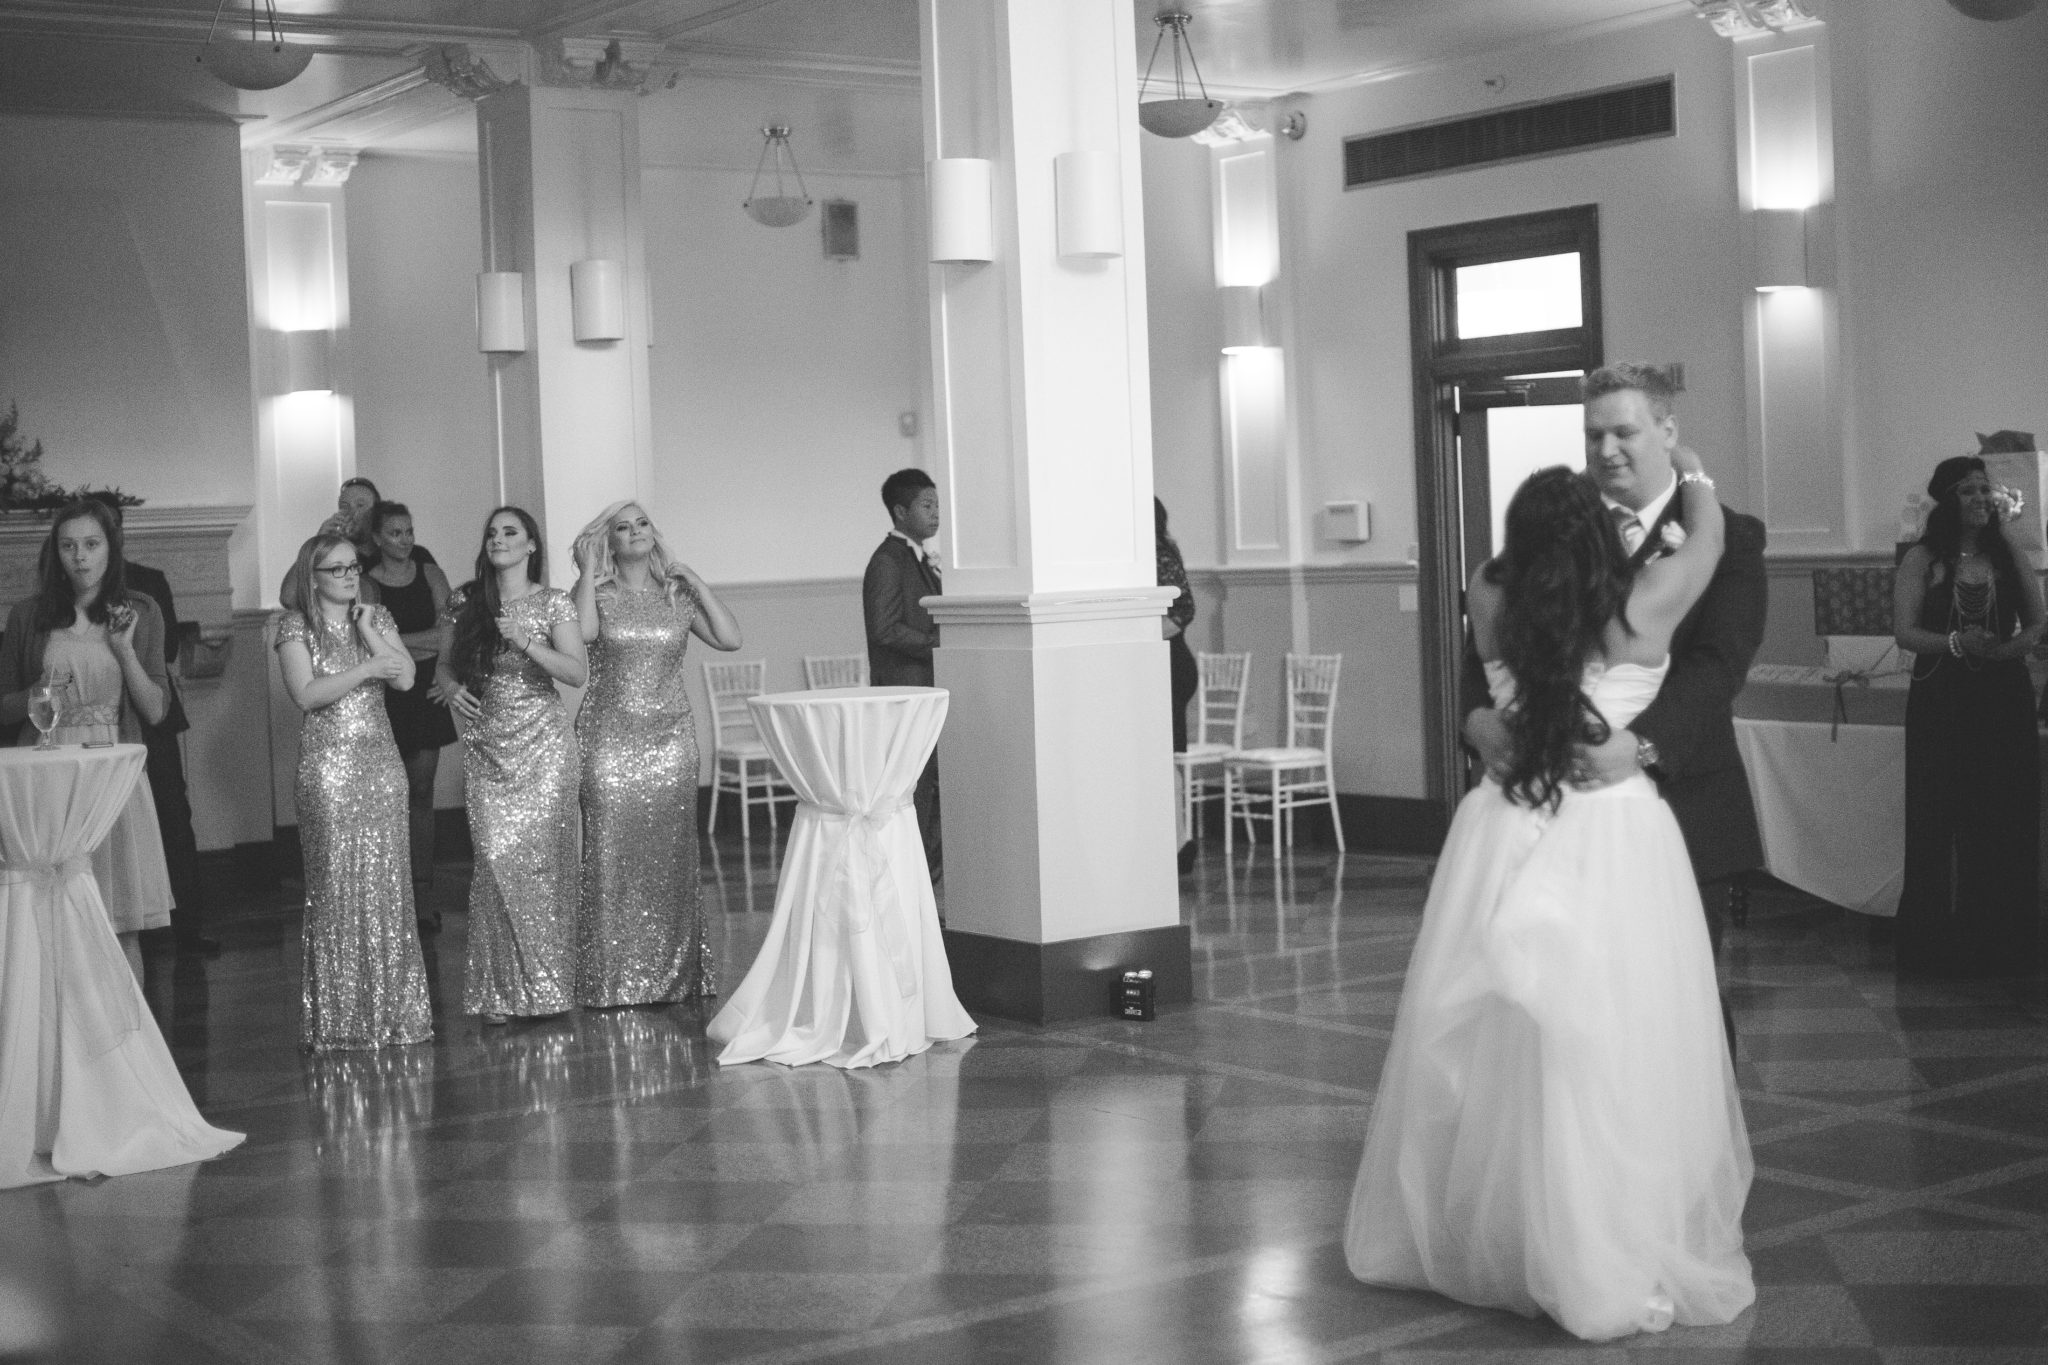 Aleshchenko 1st Dances 8 GLAM MONTE CRISTO BALLROOM WEDDING | EVERETT WEDDING PHOTOGRAPHER